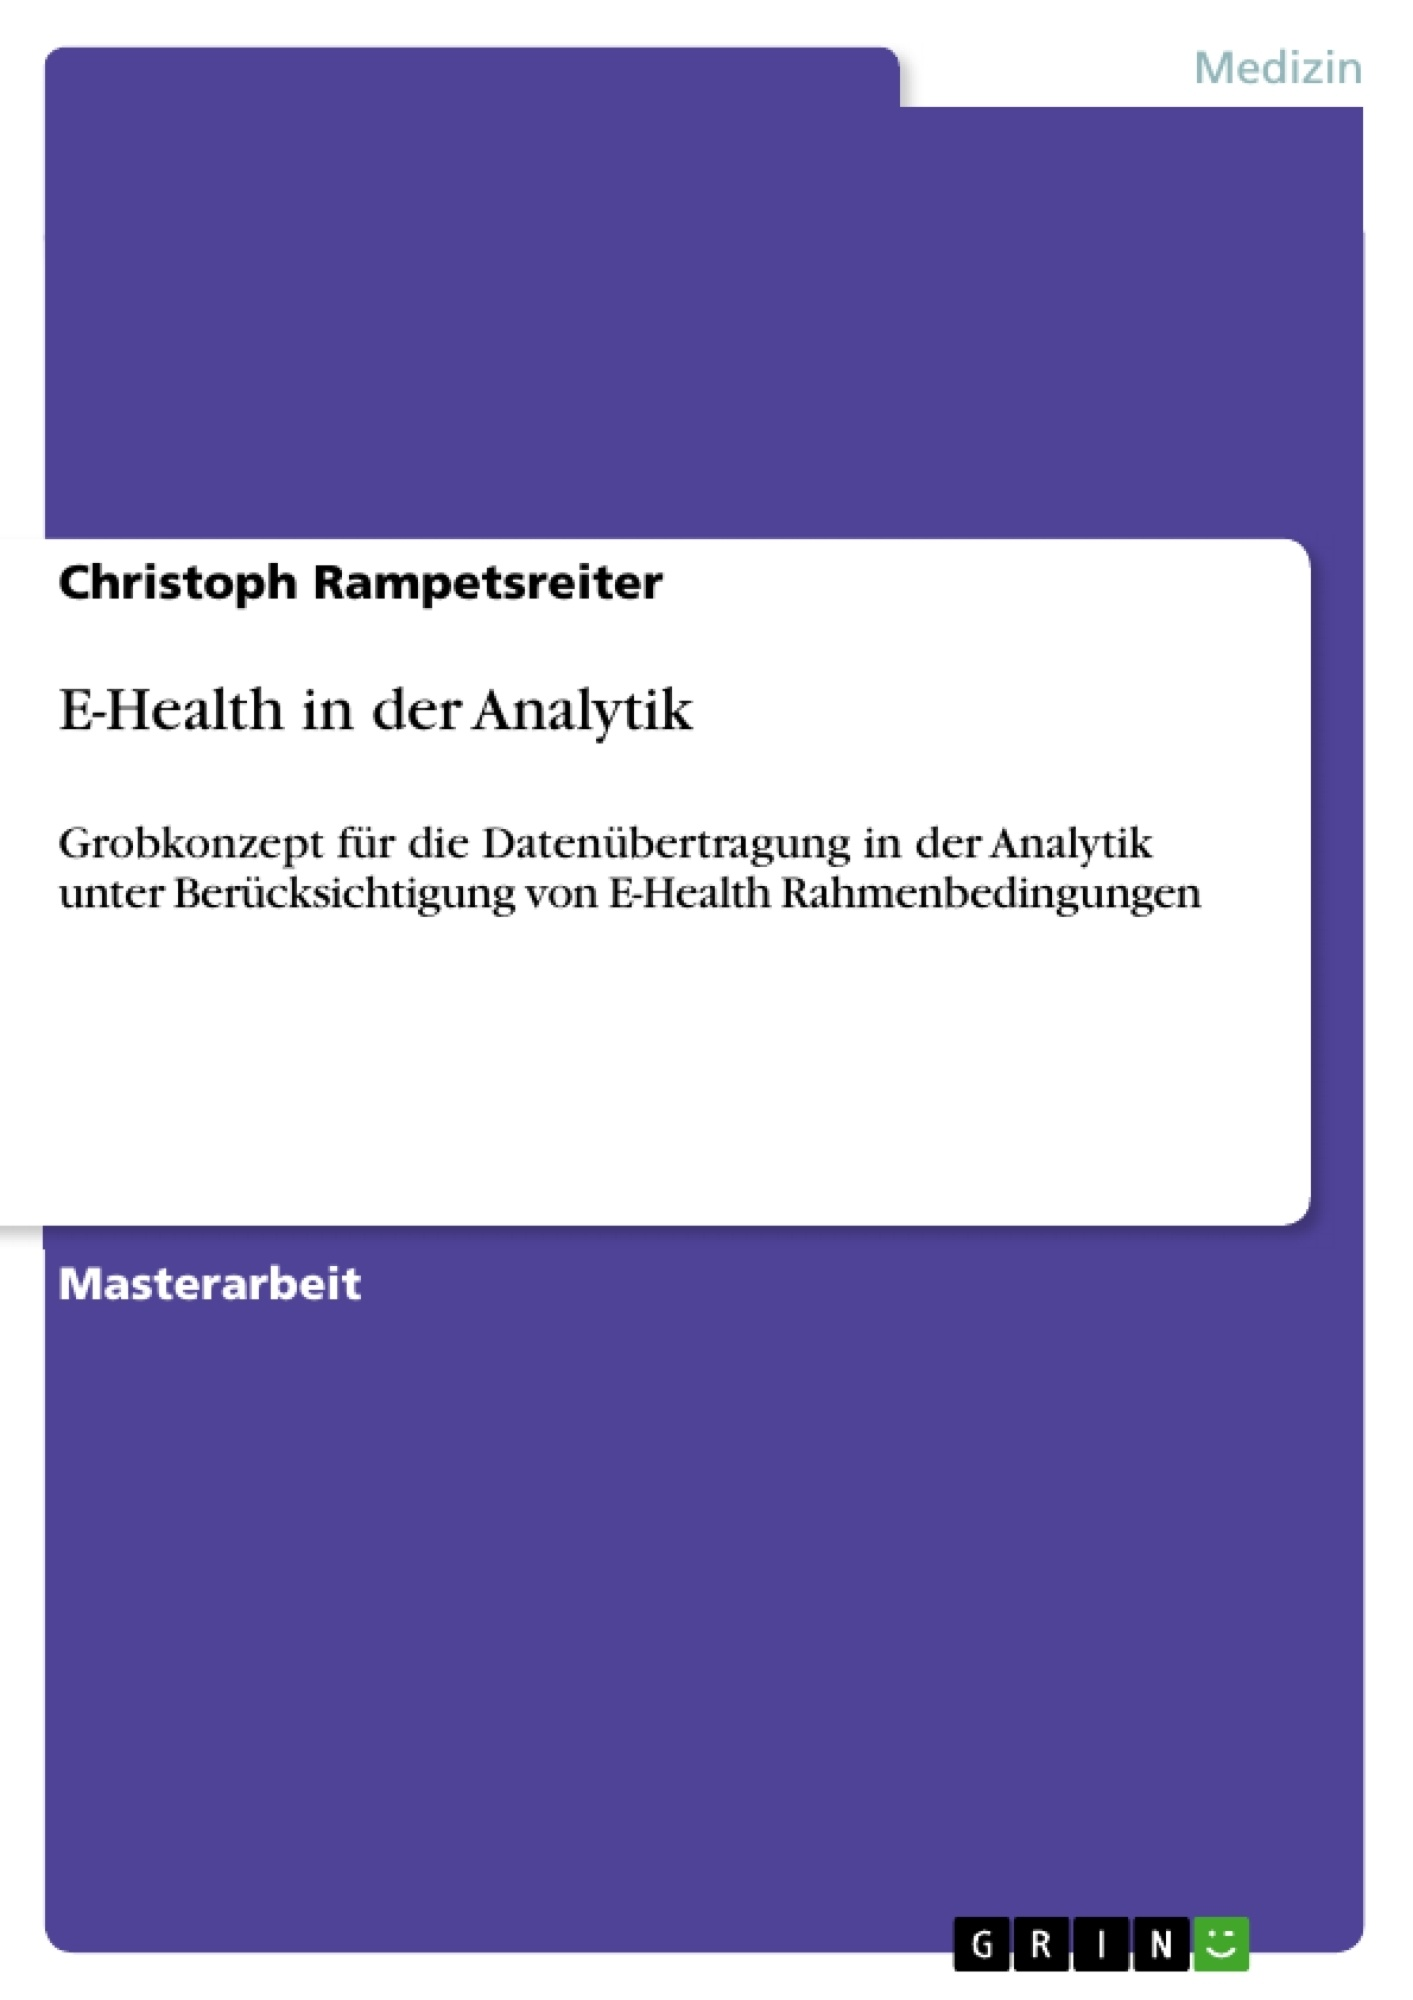 Titel: E-Health in der Analytik